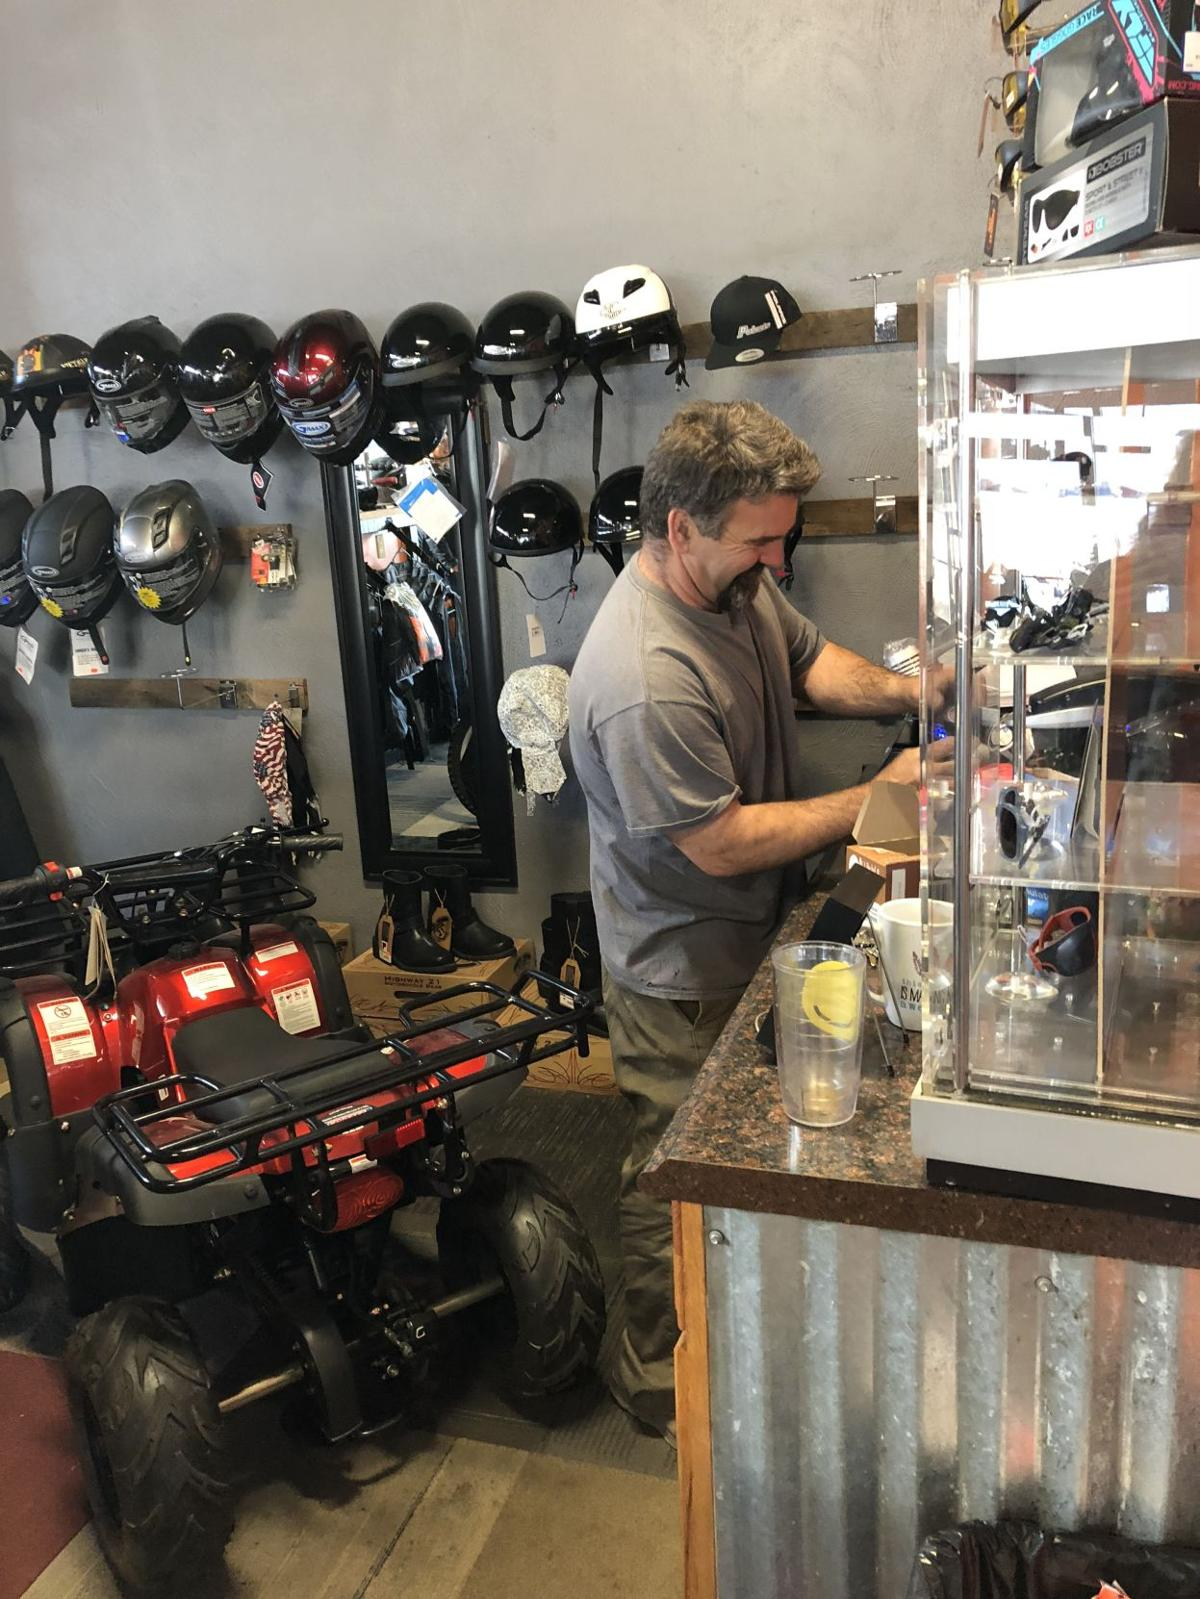 Terry Rafferty, owner of GearHead, creates motorcycle tours for riders of all sorts.